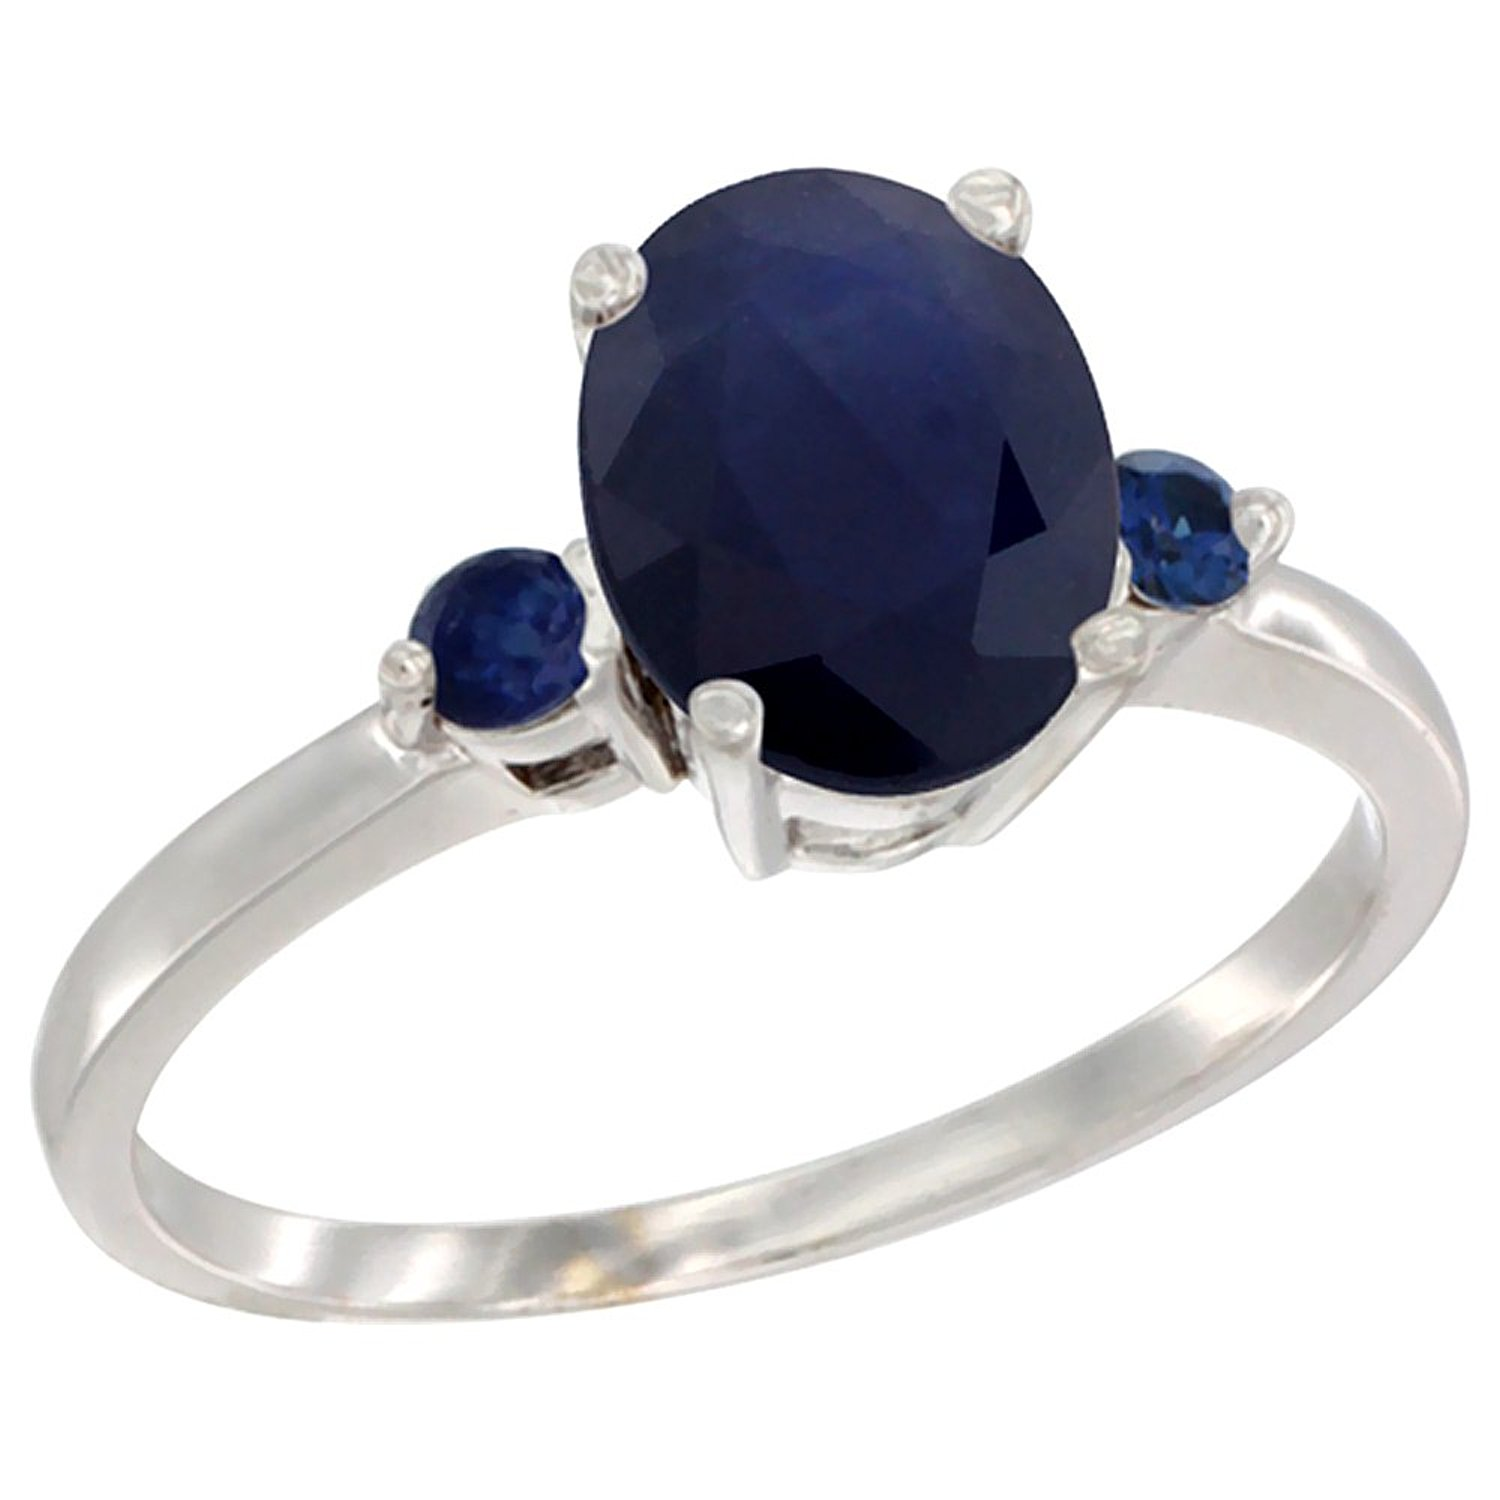 14K White Gold Natural Blue Sapphire Ring Oval 9x7 mm Blue Sapphire Accent, sizes 5 to 10